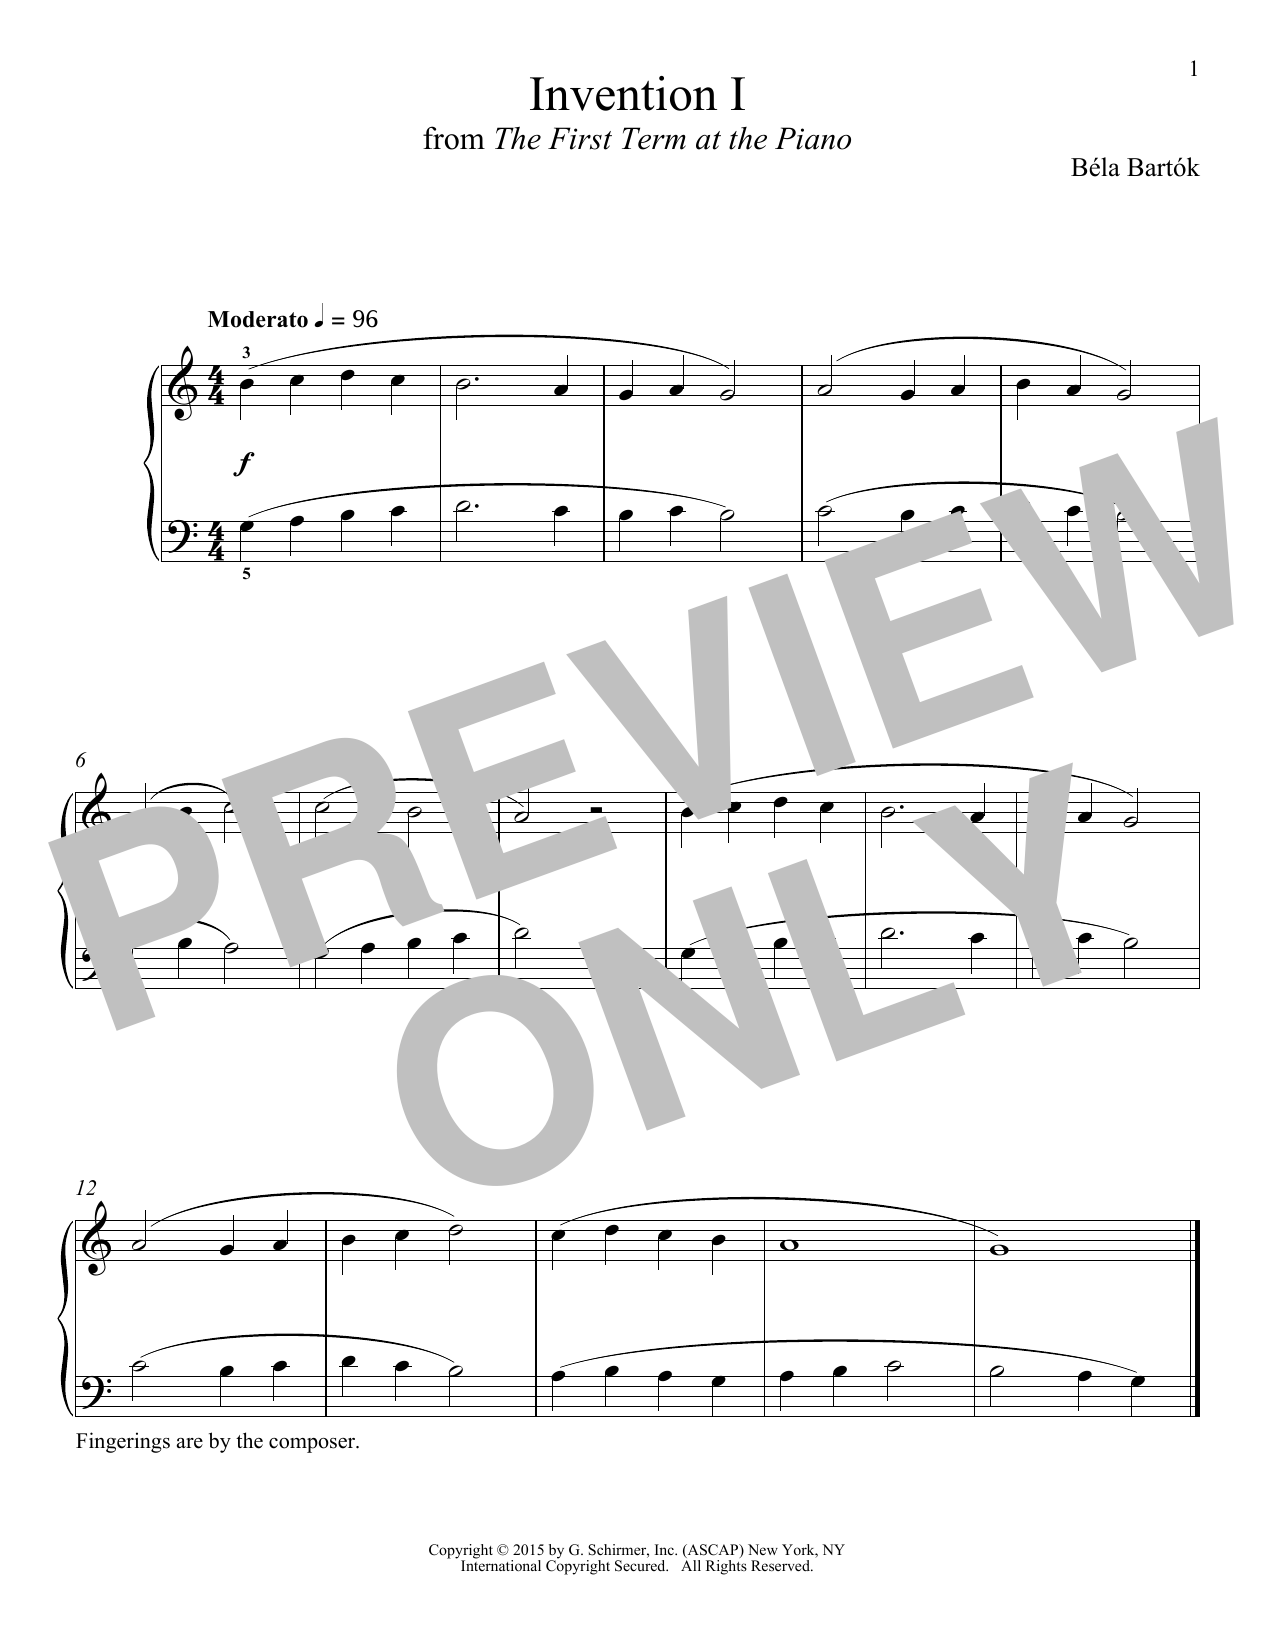 Bela Bartok Invention I sheet music notes and chords